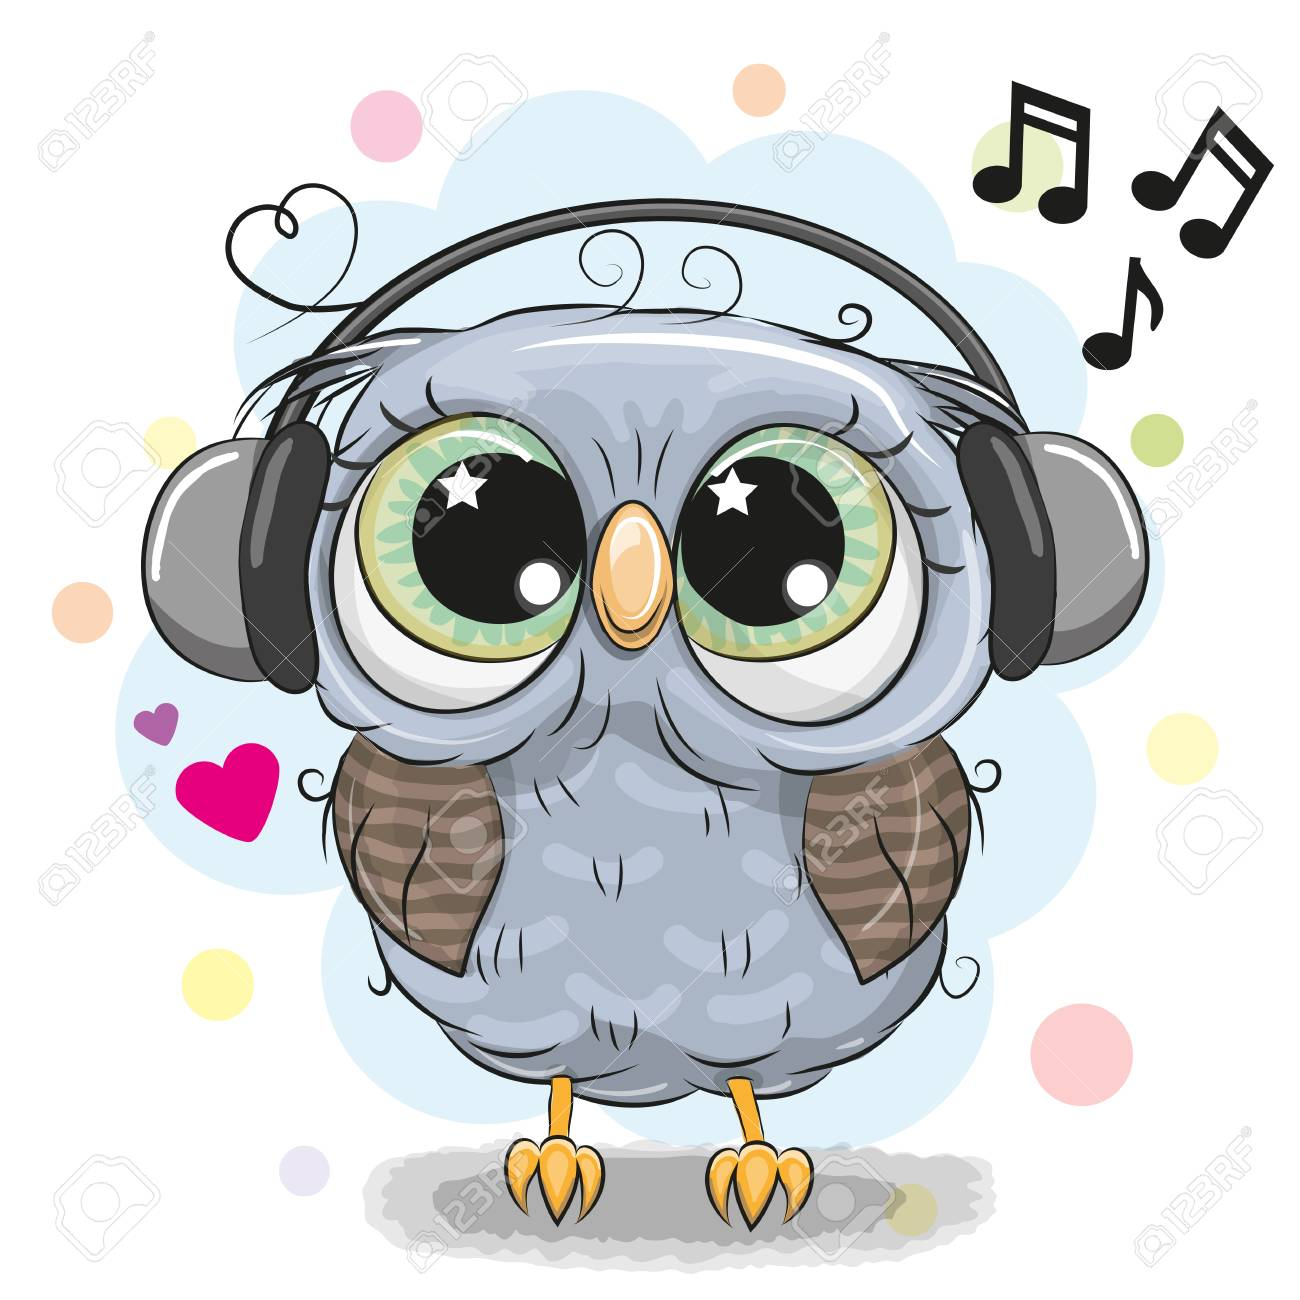 Cute Cartoon Owl With Big Eyes With Headphones Royalty Free